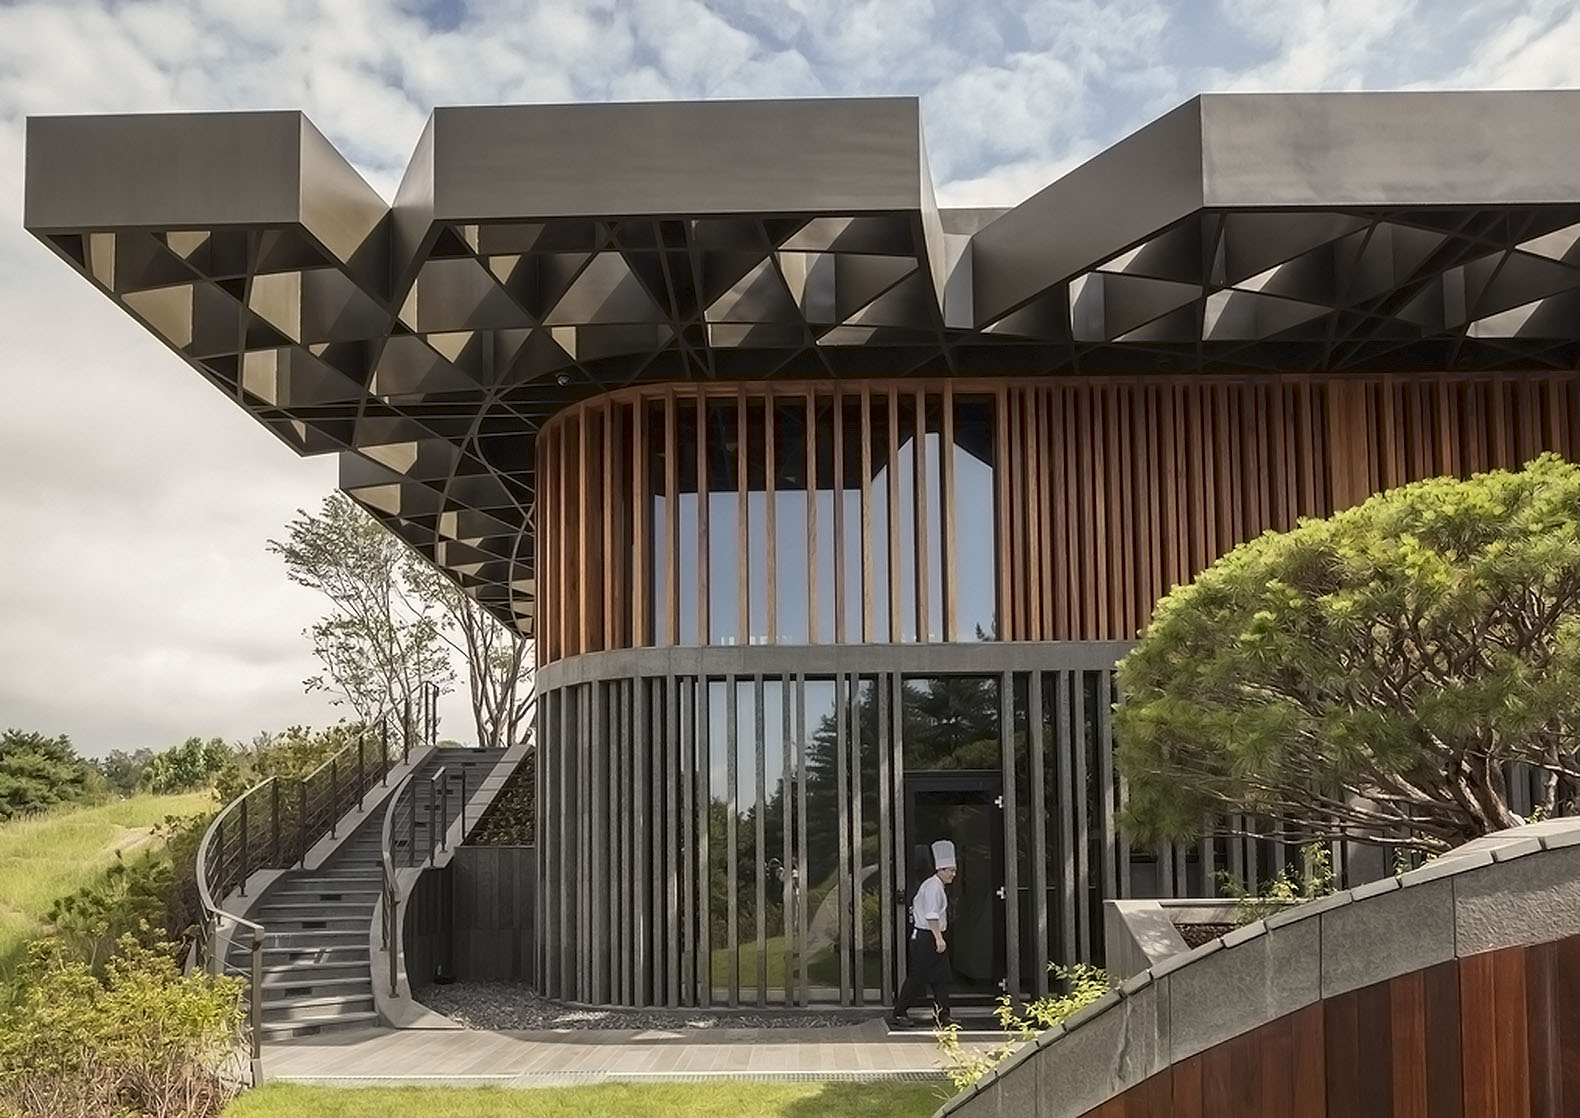 Mecanoou0027s Taekwang Country Club Café is topped with a roof inspired by a forest canopy & Canopy | Inhabitat - Green Design Innovation Architecture Green ...